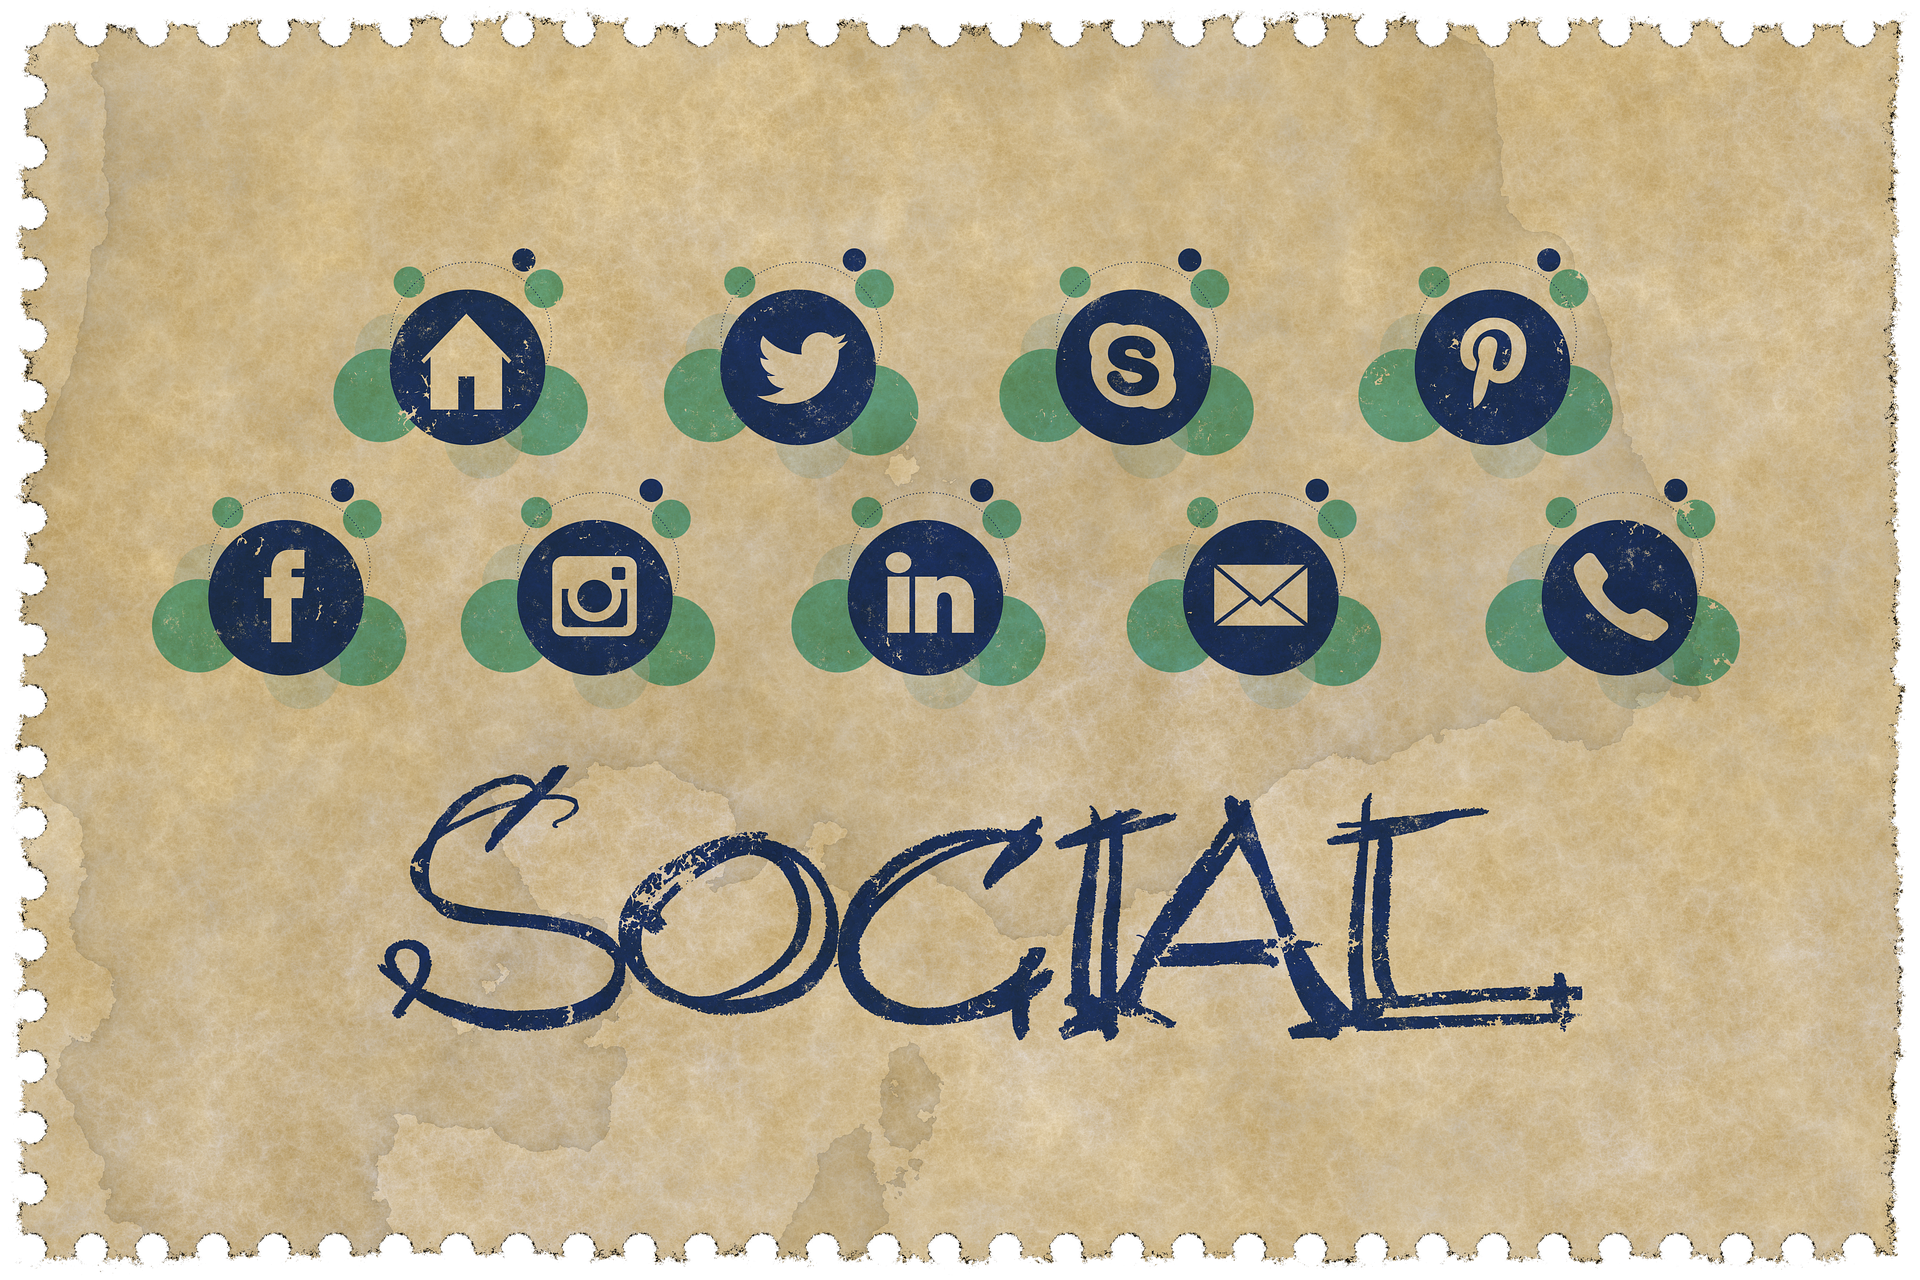 Image has the word social and a variety of social media logos displayed